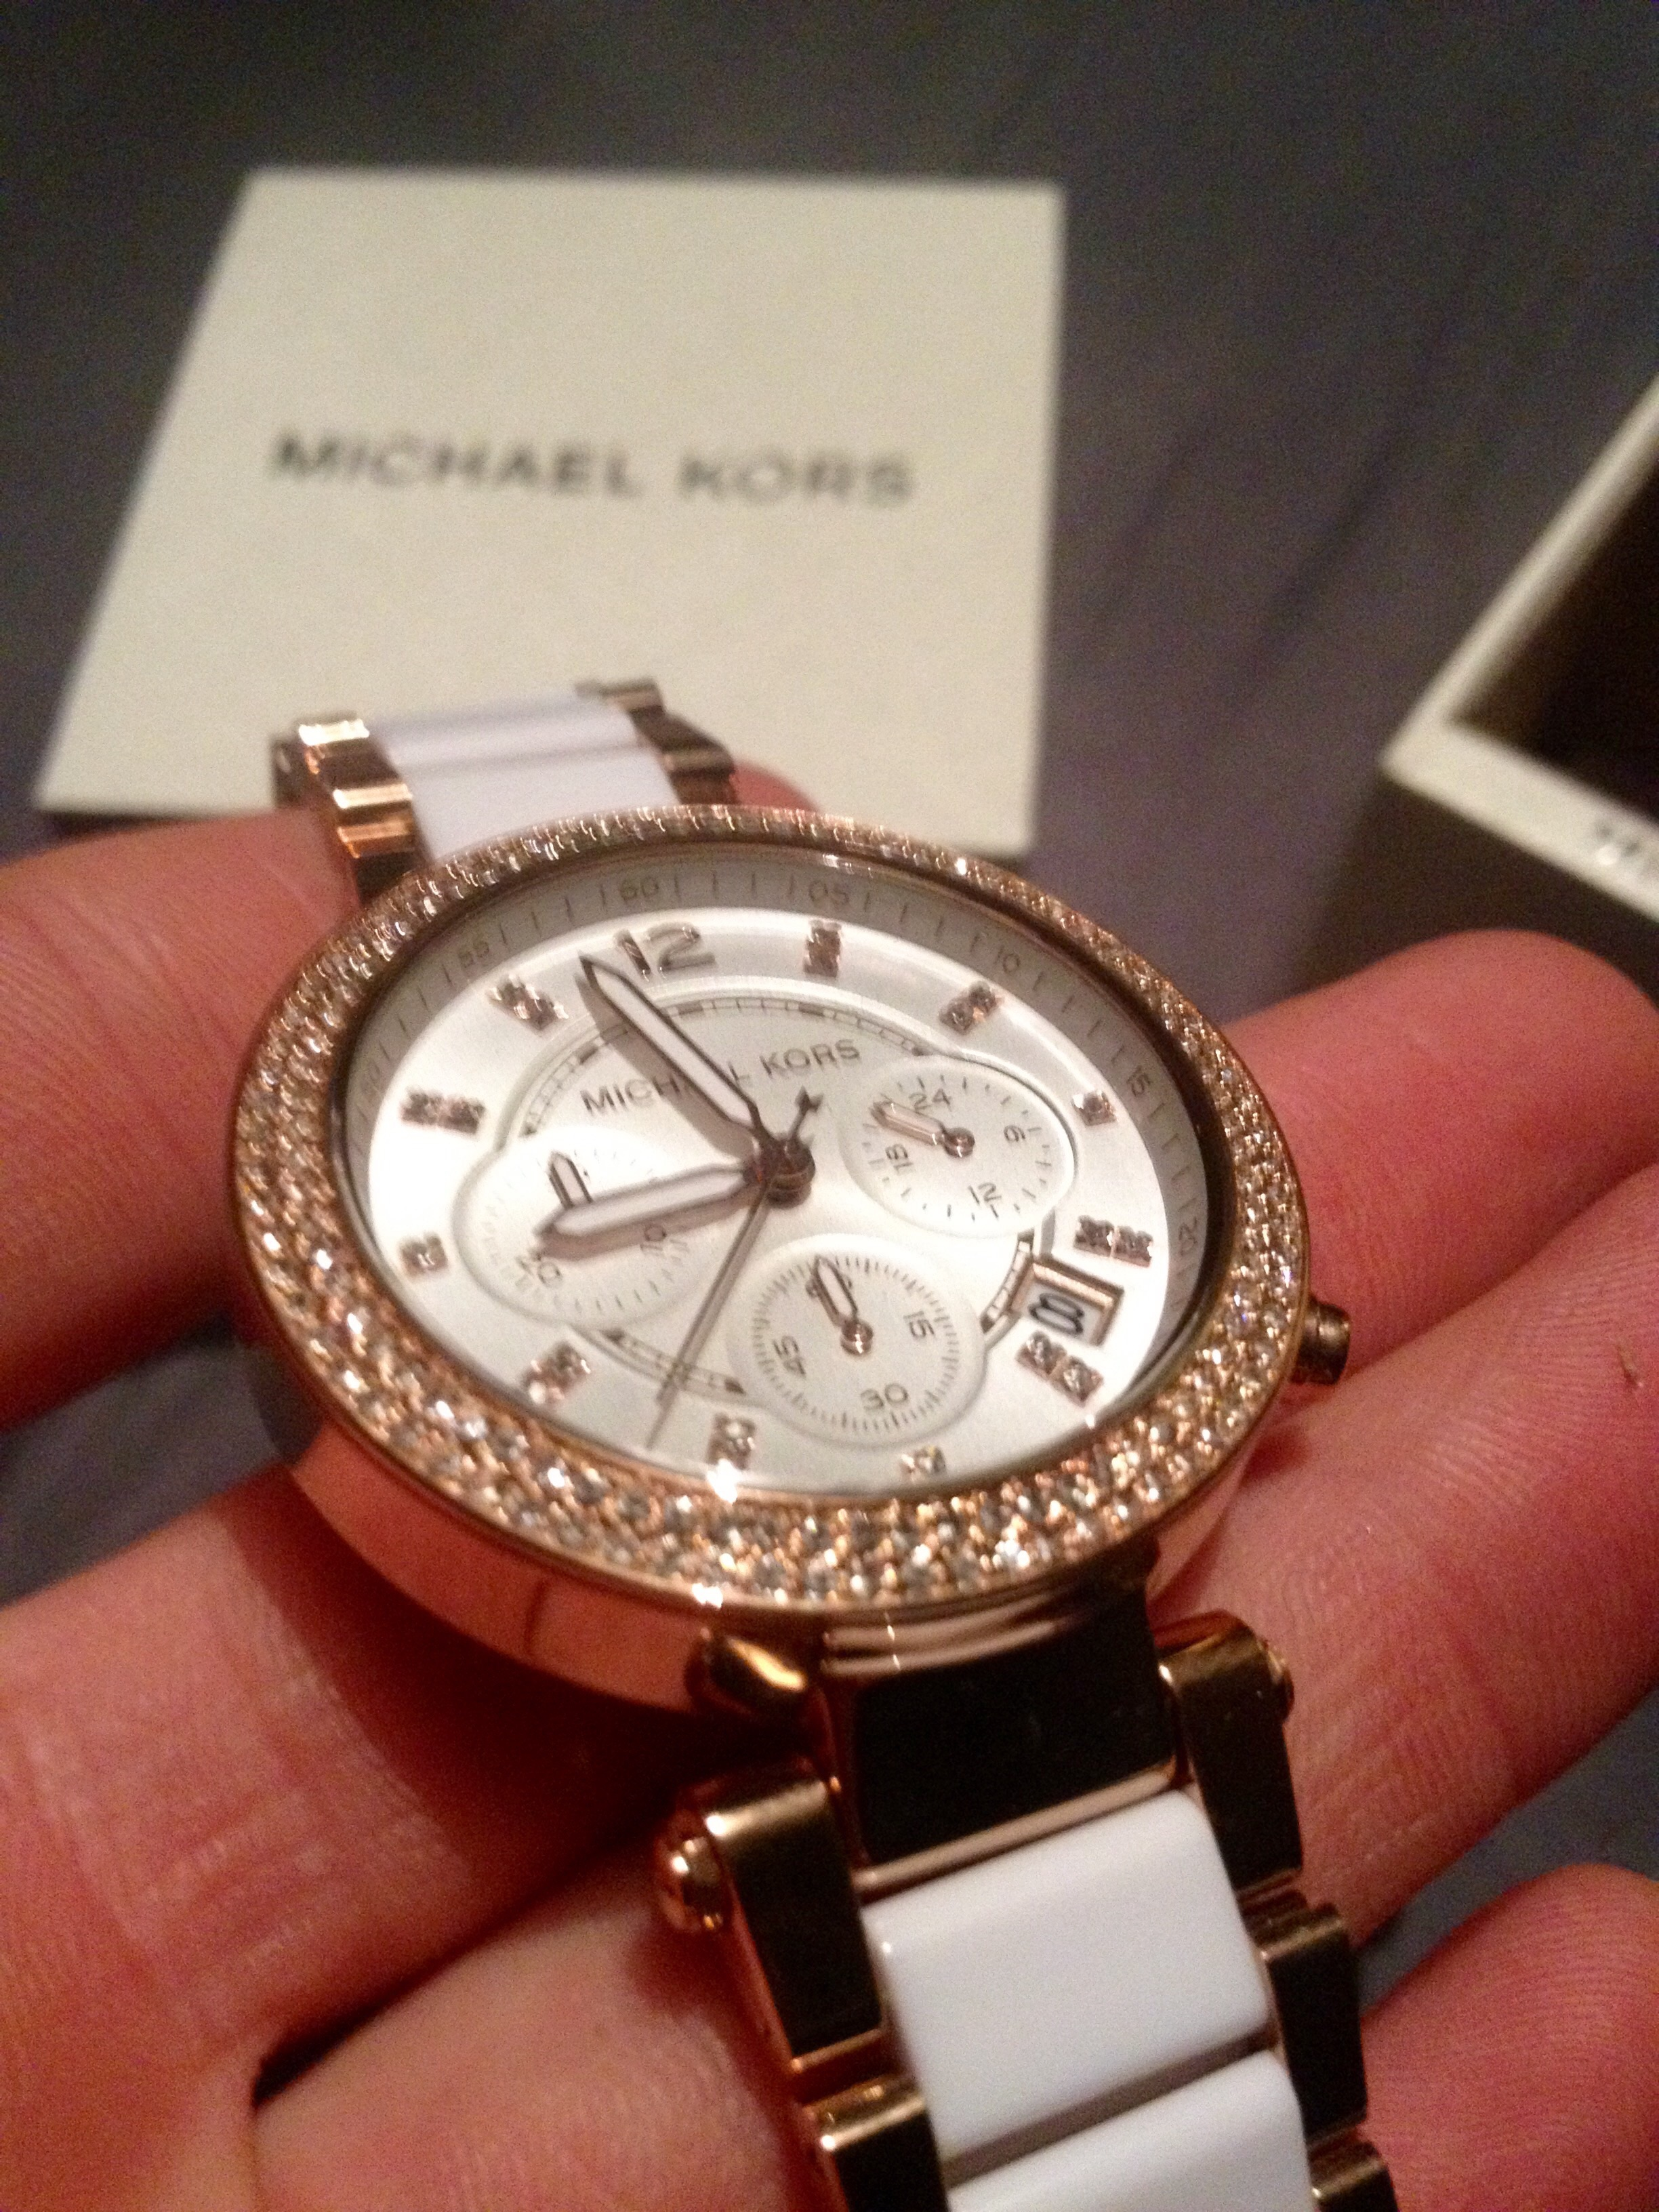 2abff19fb221 I am extremely satisfied with this watch and its quality! As you can see in  my image its an extremely attractive watch with little diamonds that  twinkle in ...